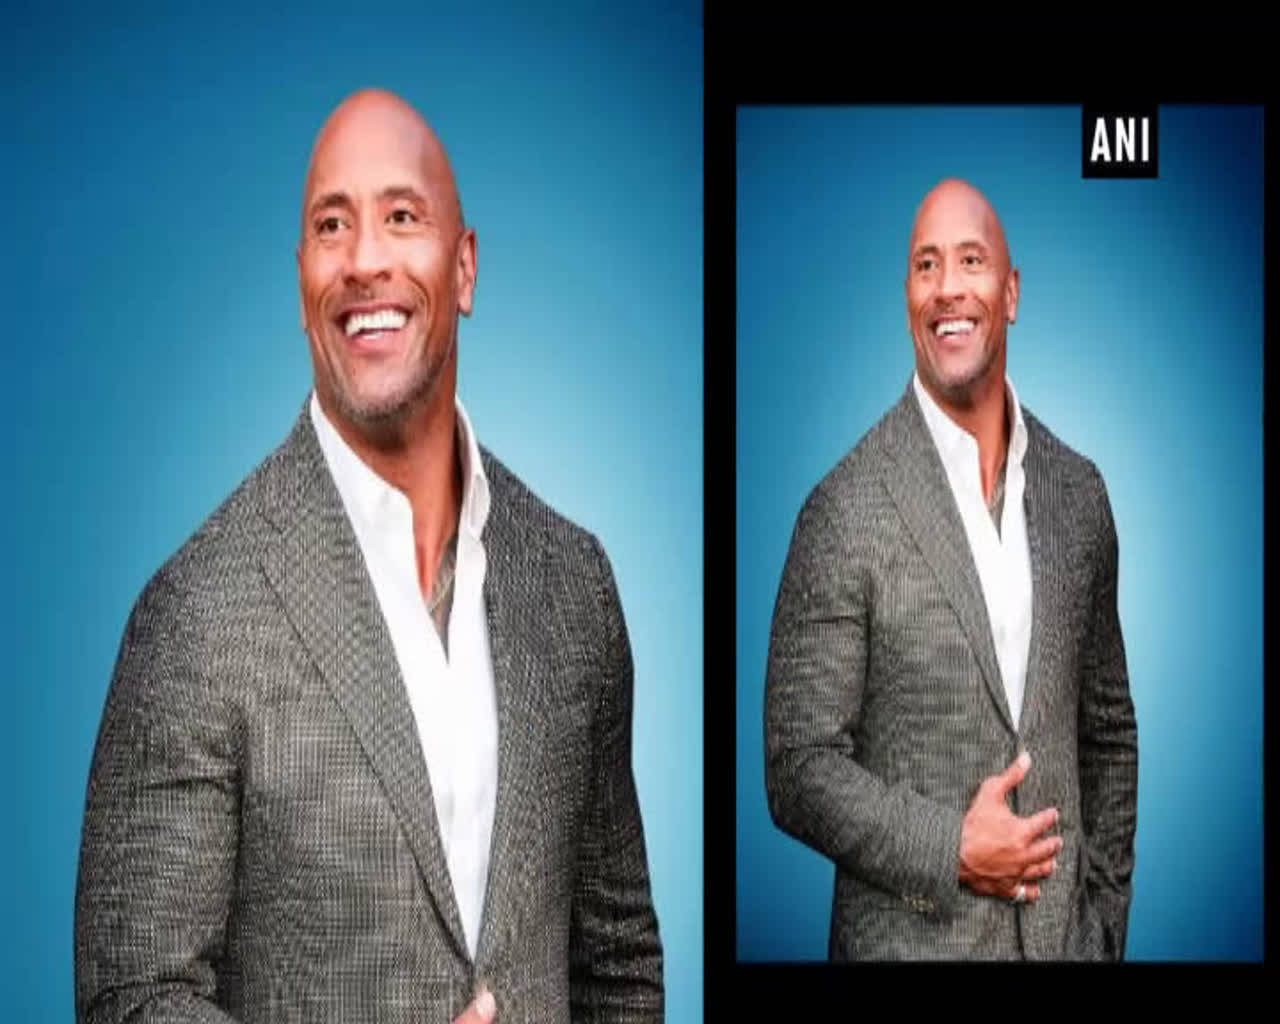 Dwayne Johnson to star in 'The King'